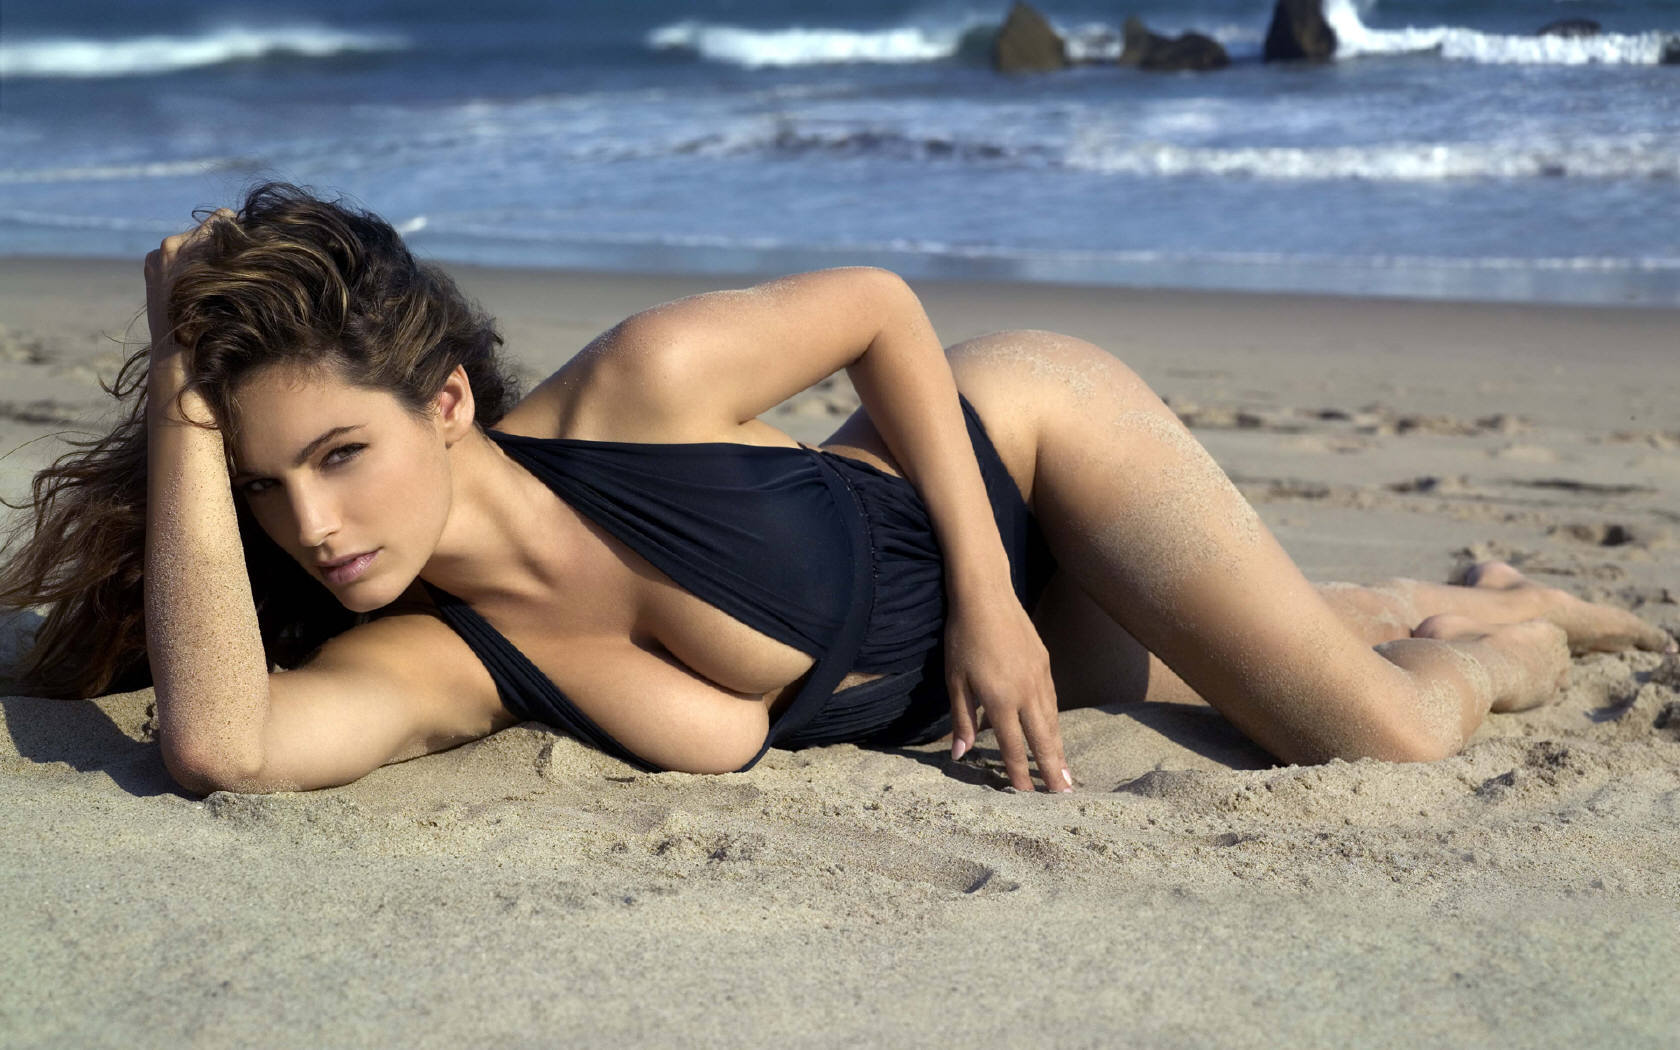 Women Beach Beauty Sexy Woman Girl Hd Wallpaper Nature Amp Landscapes